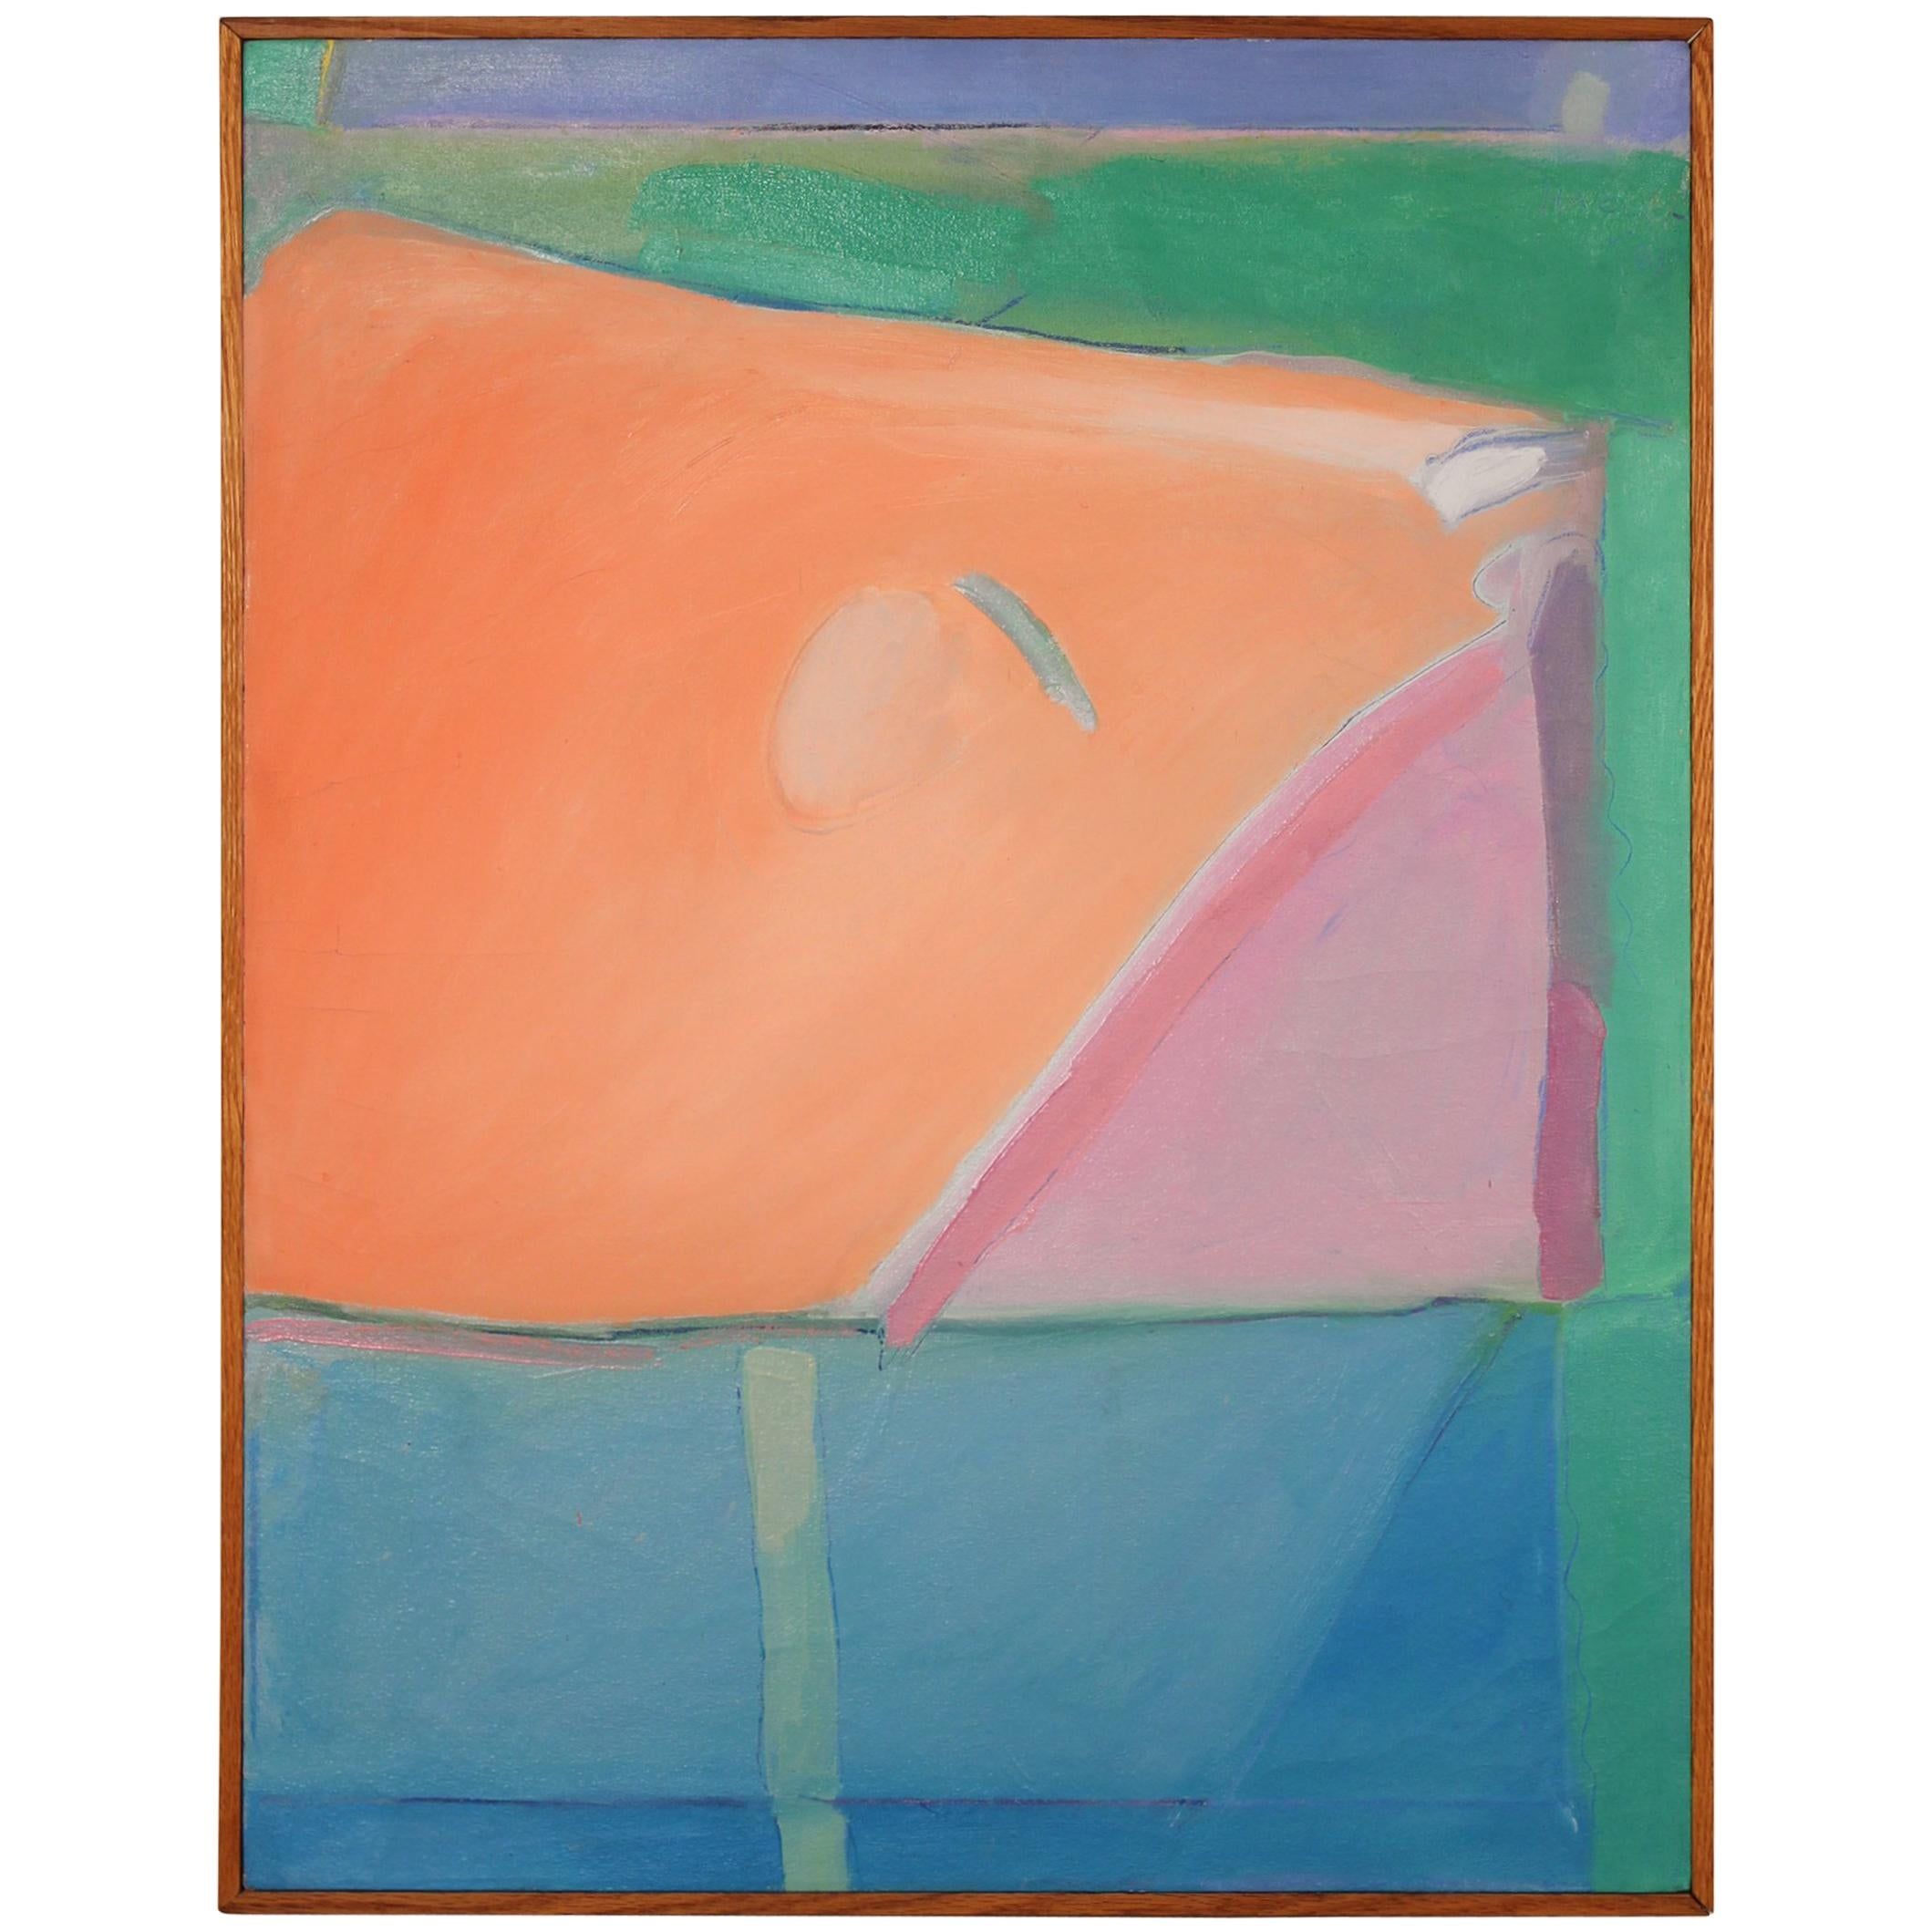 1980s Richard Diebenkorn Style Abstract Expressionism Painting